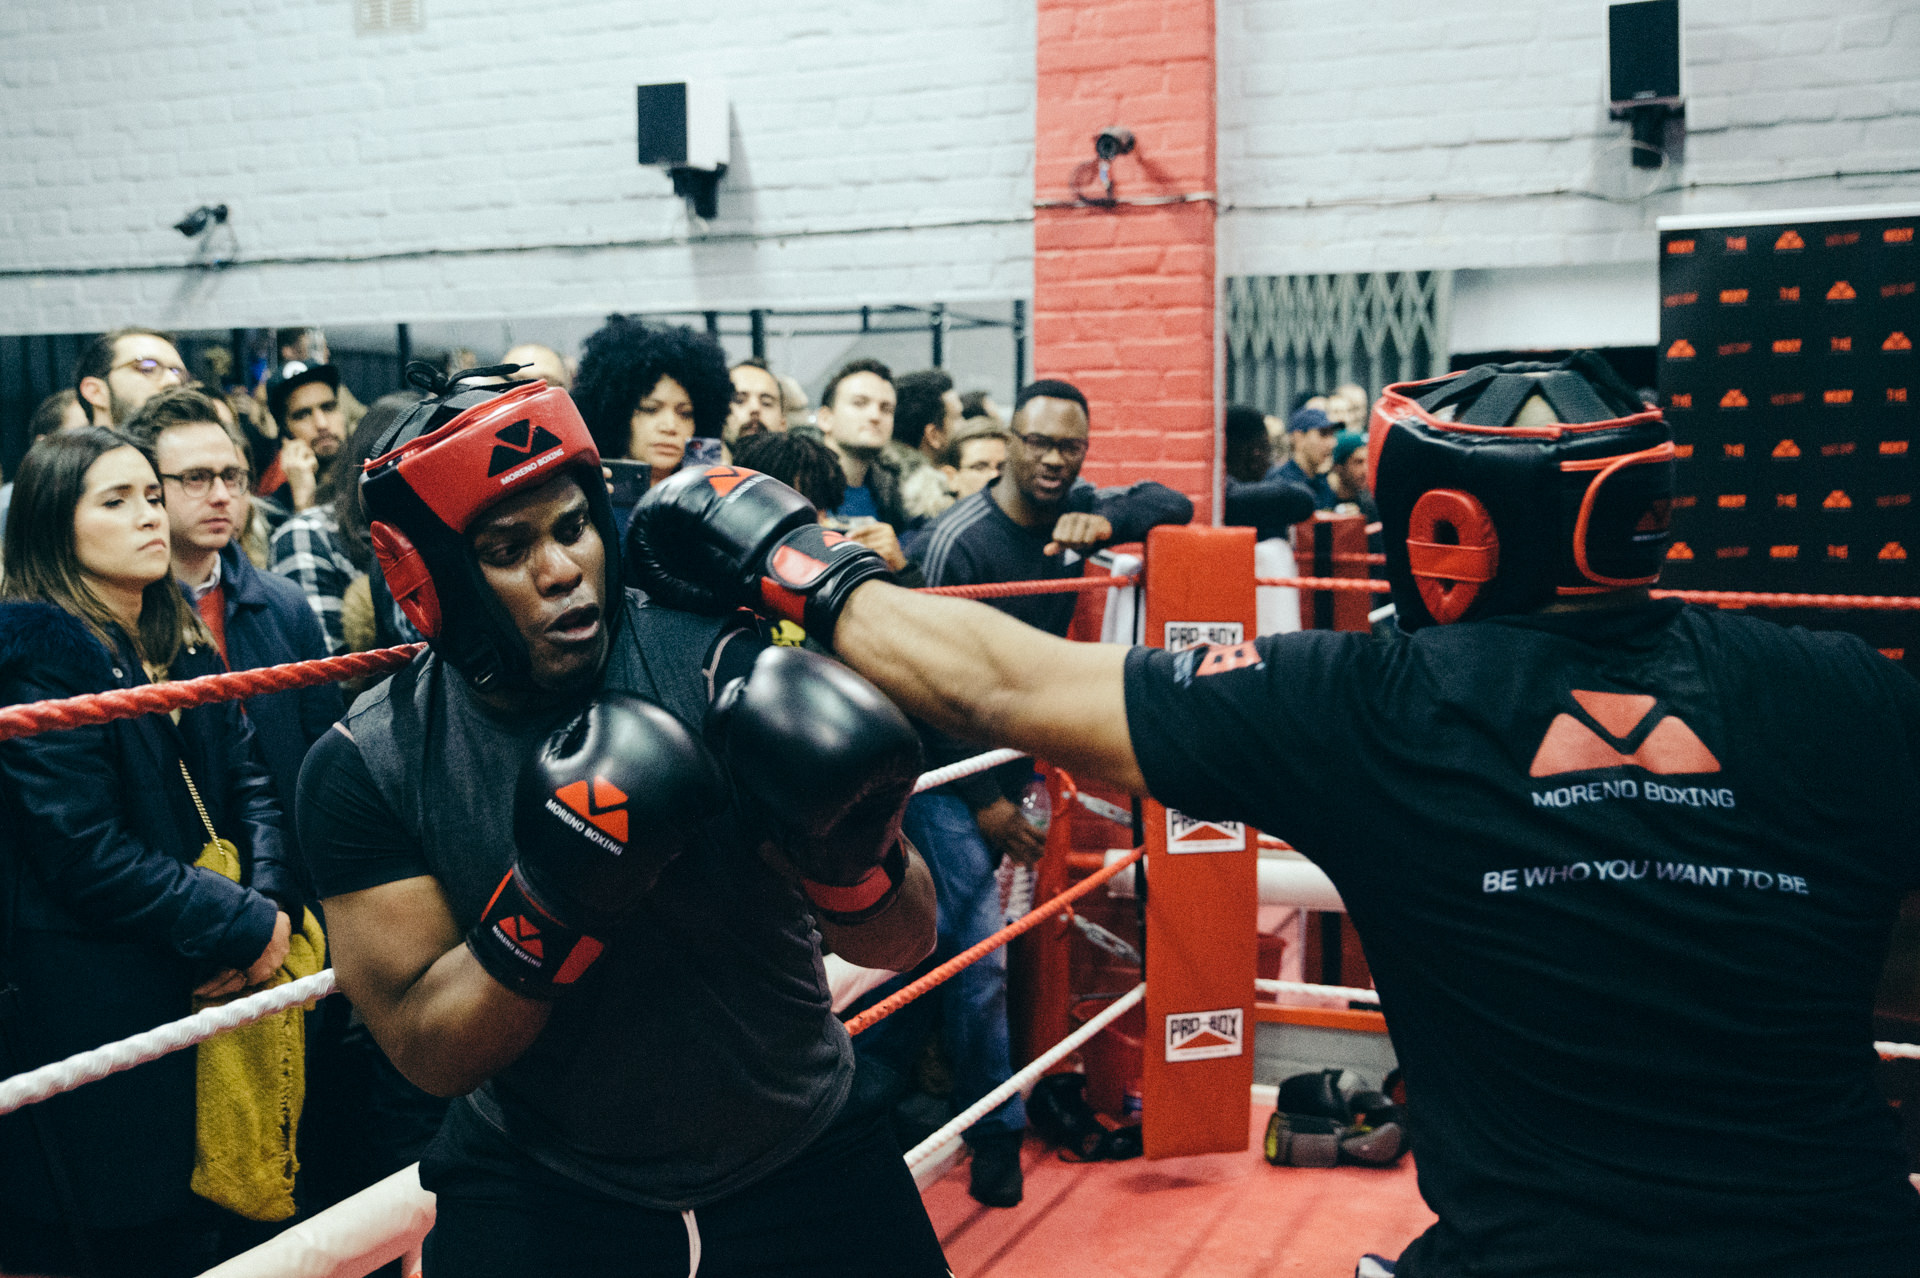 Moreno Boxing gym boxing competition